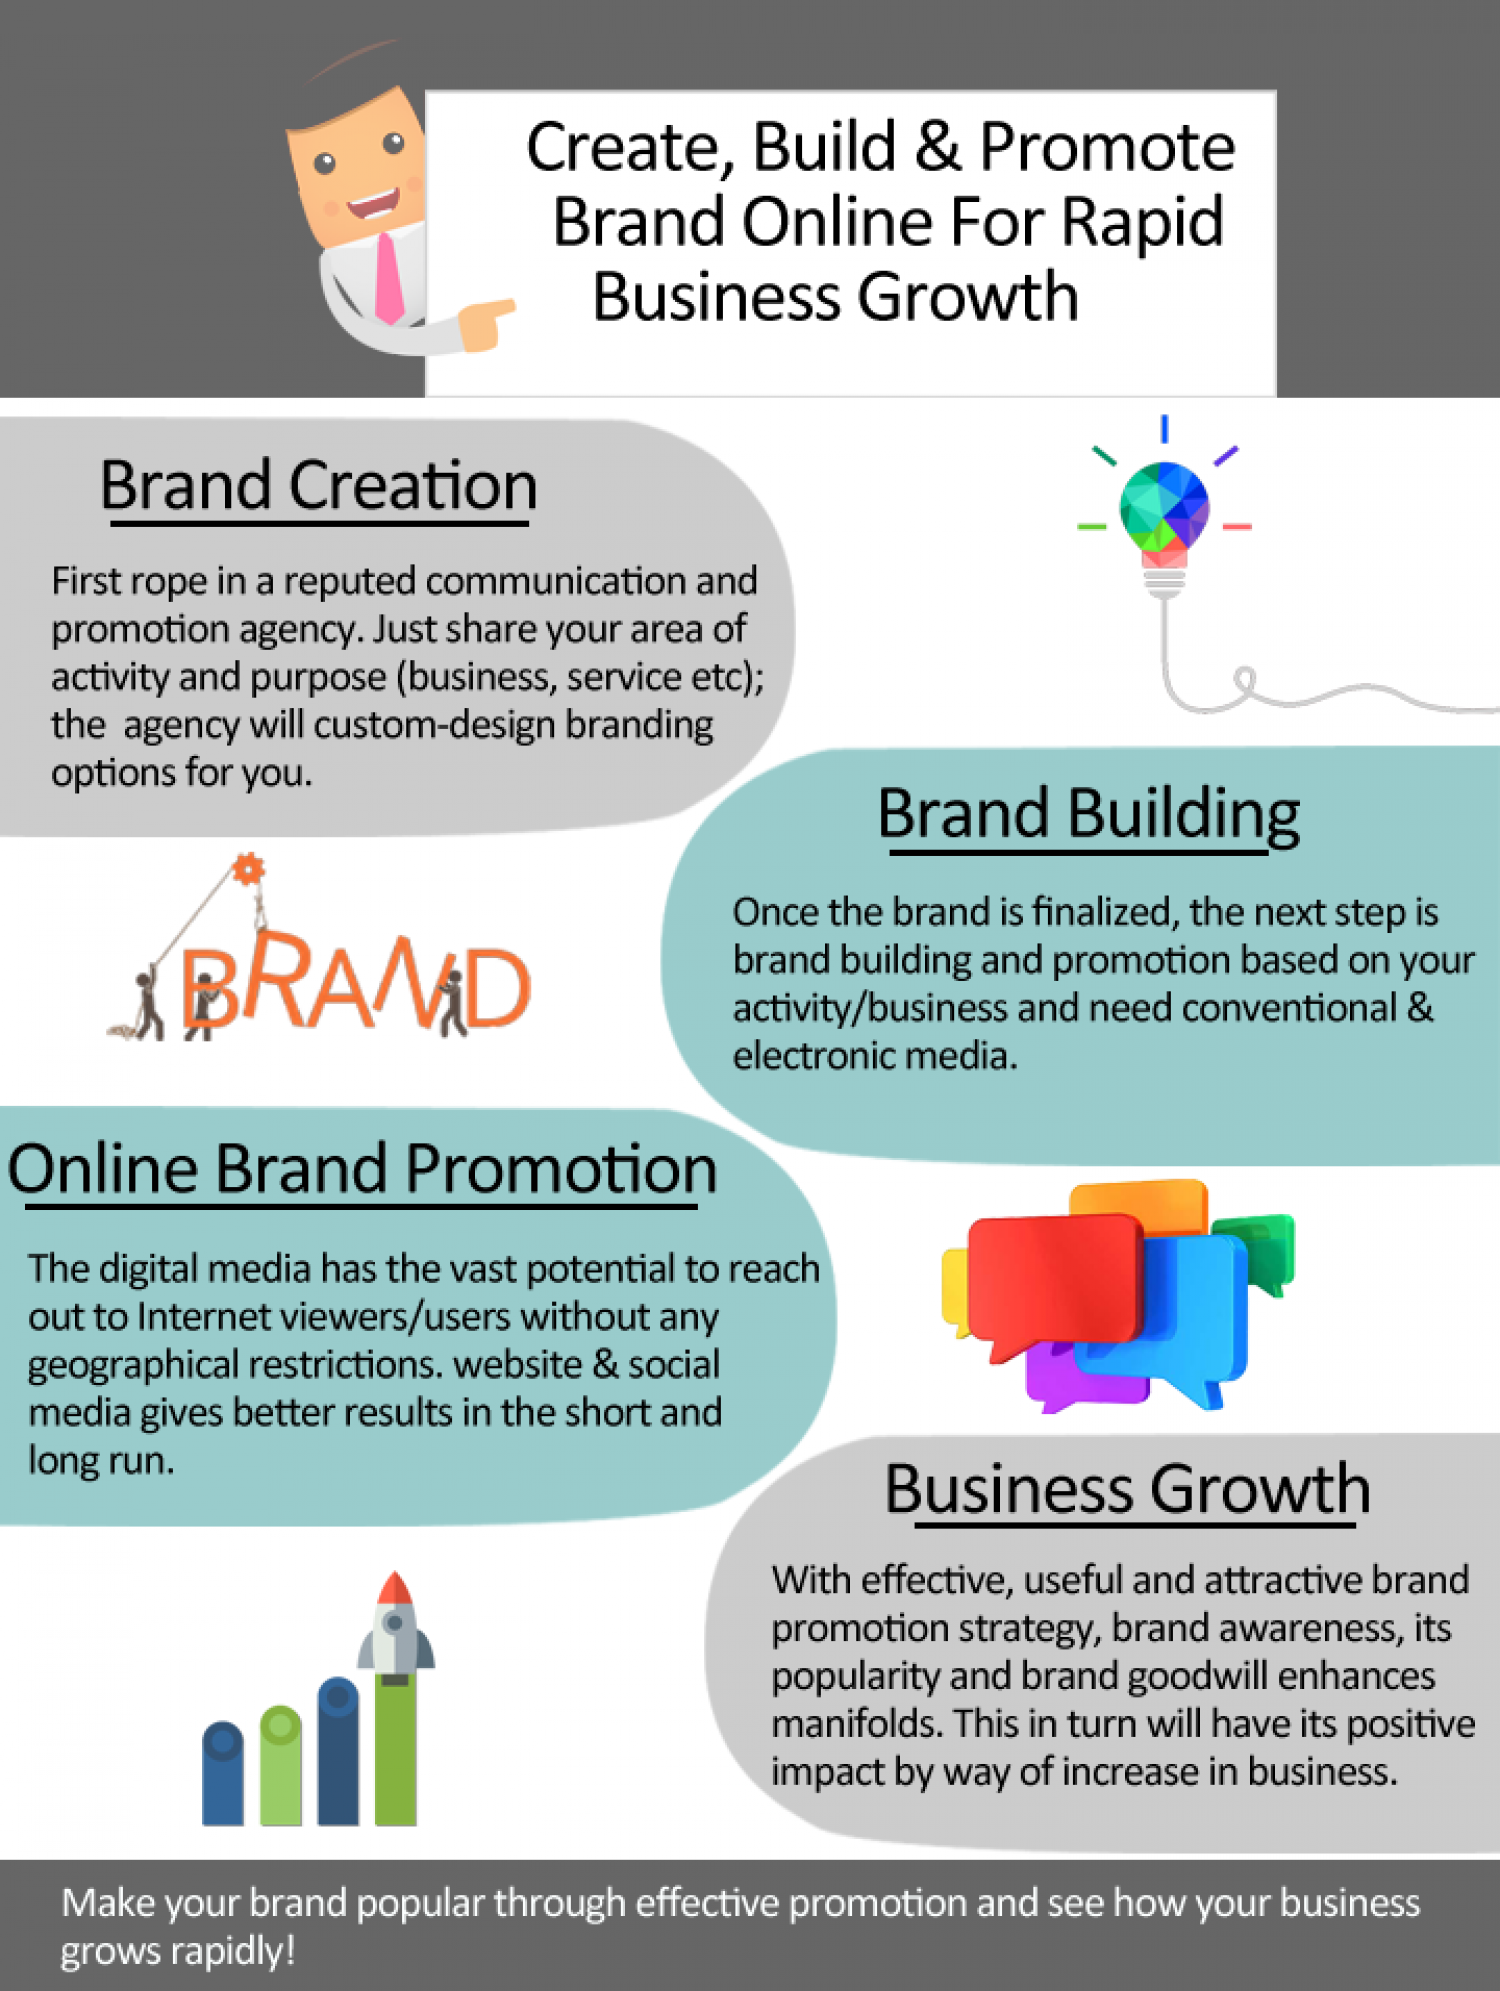 Create, Build and Promote Brand Online for Rapid Business Growth  Infographic